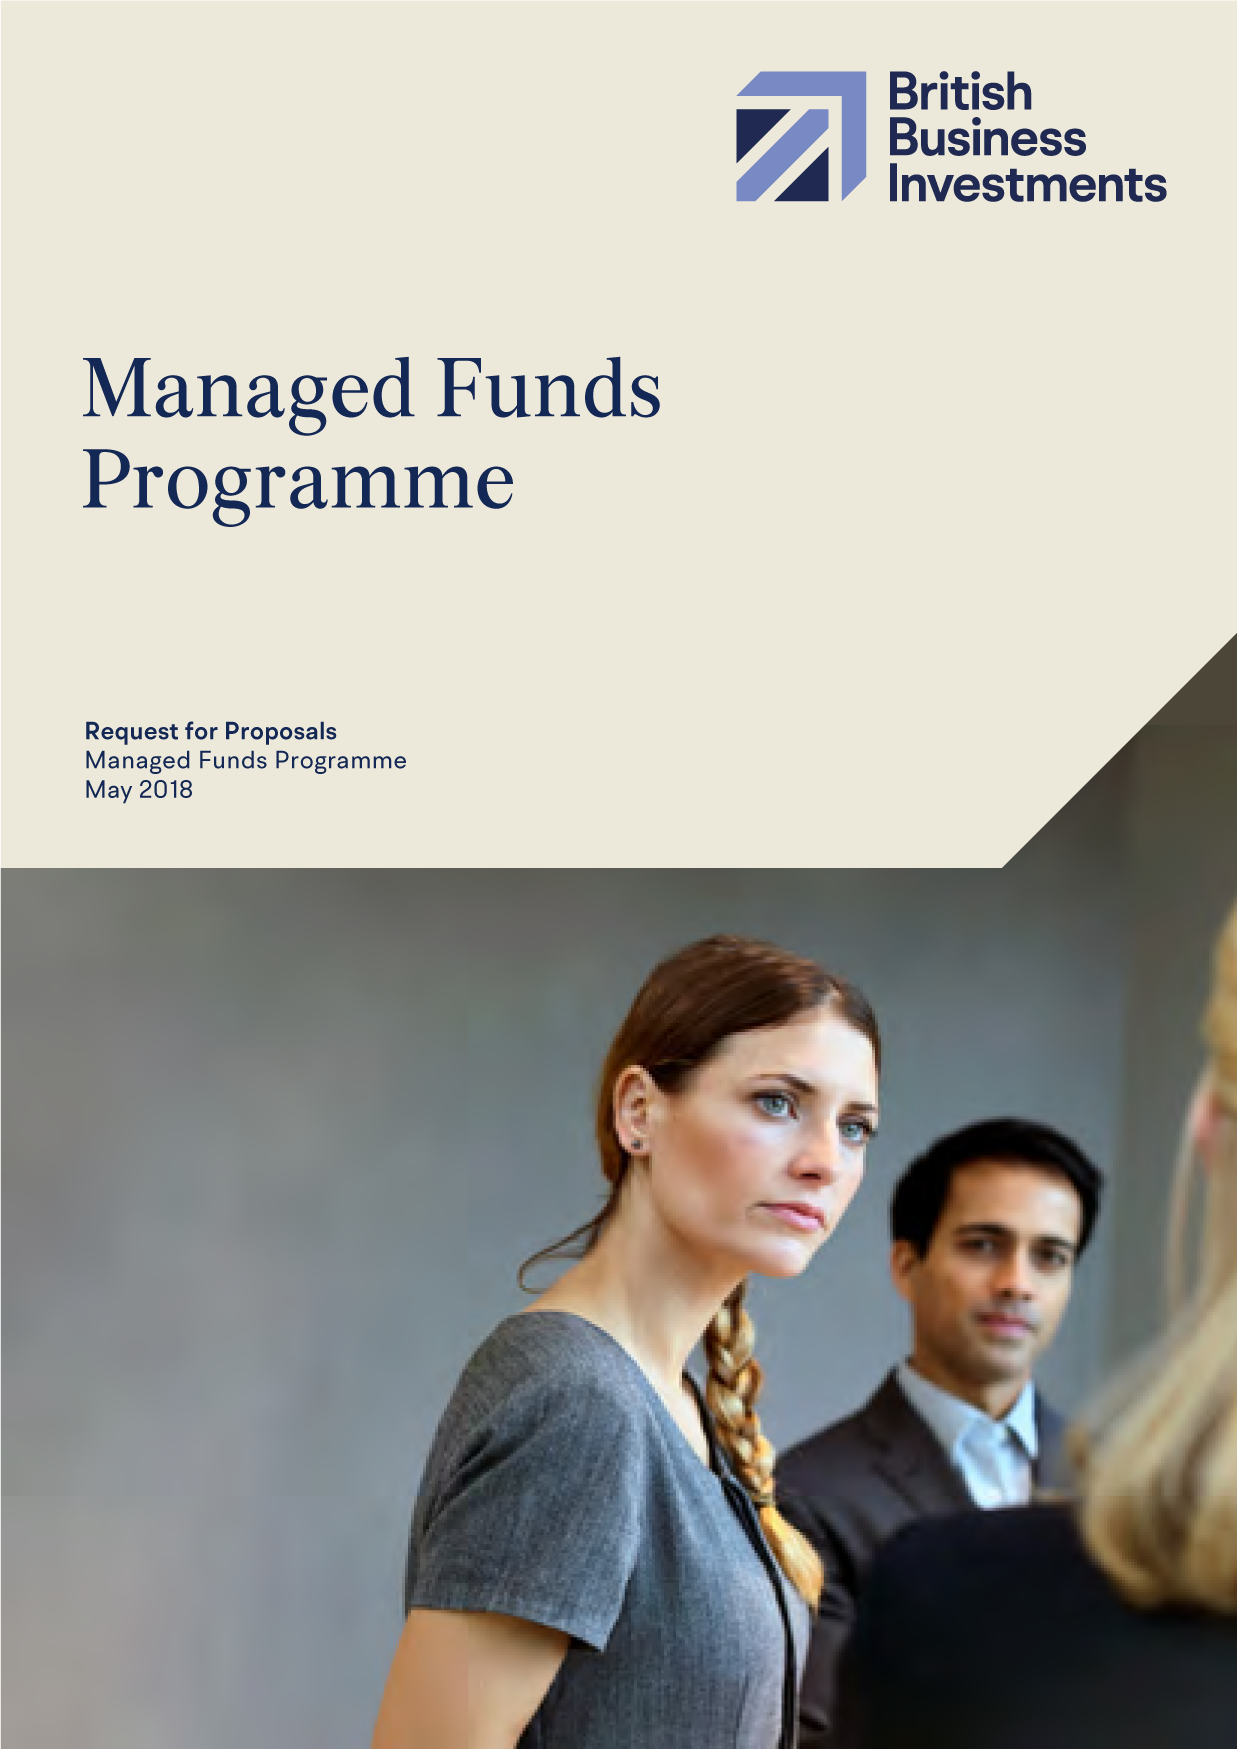 Managed Funds Request for Proposals